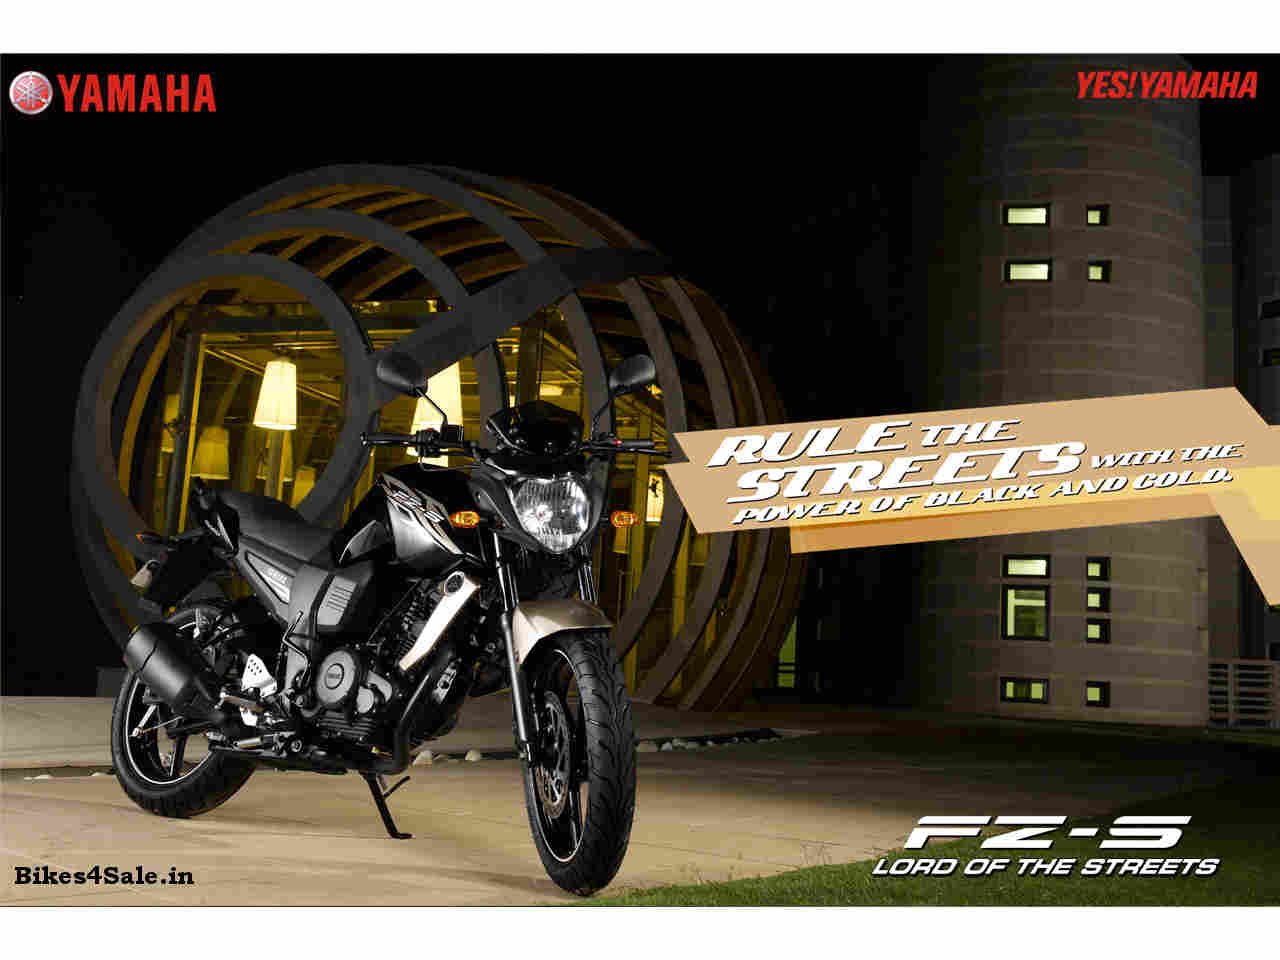 New Yamaha FZ-S